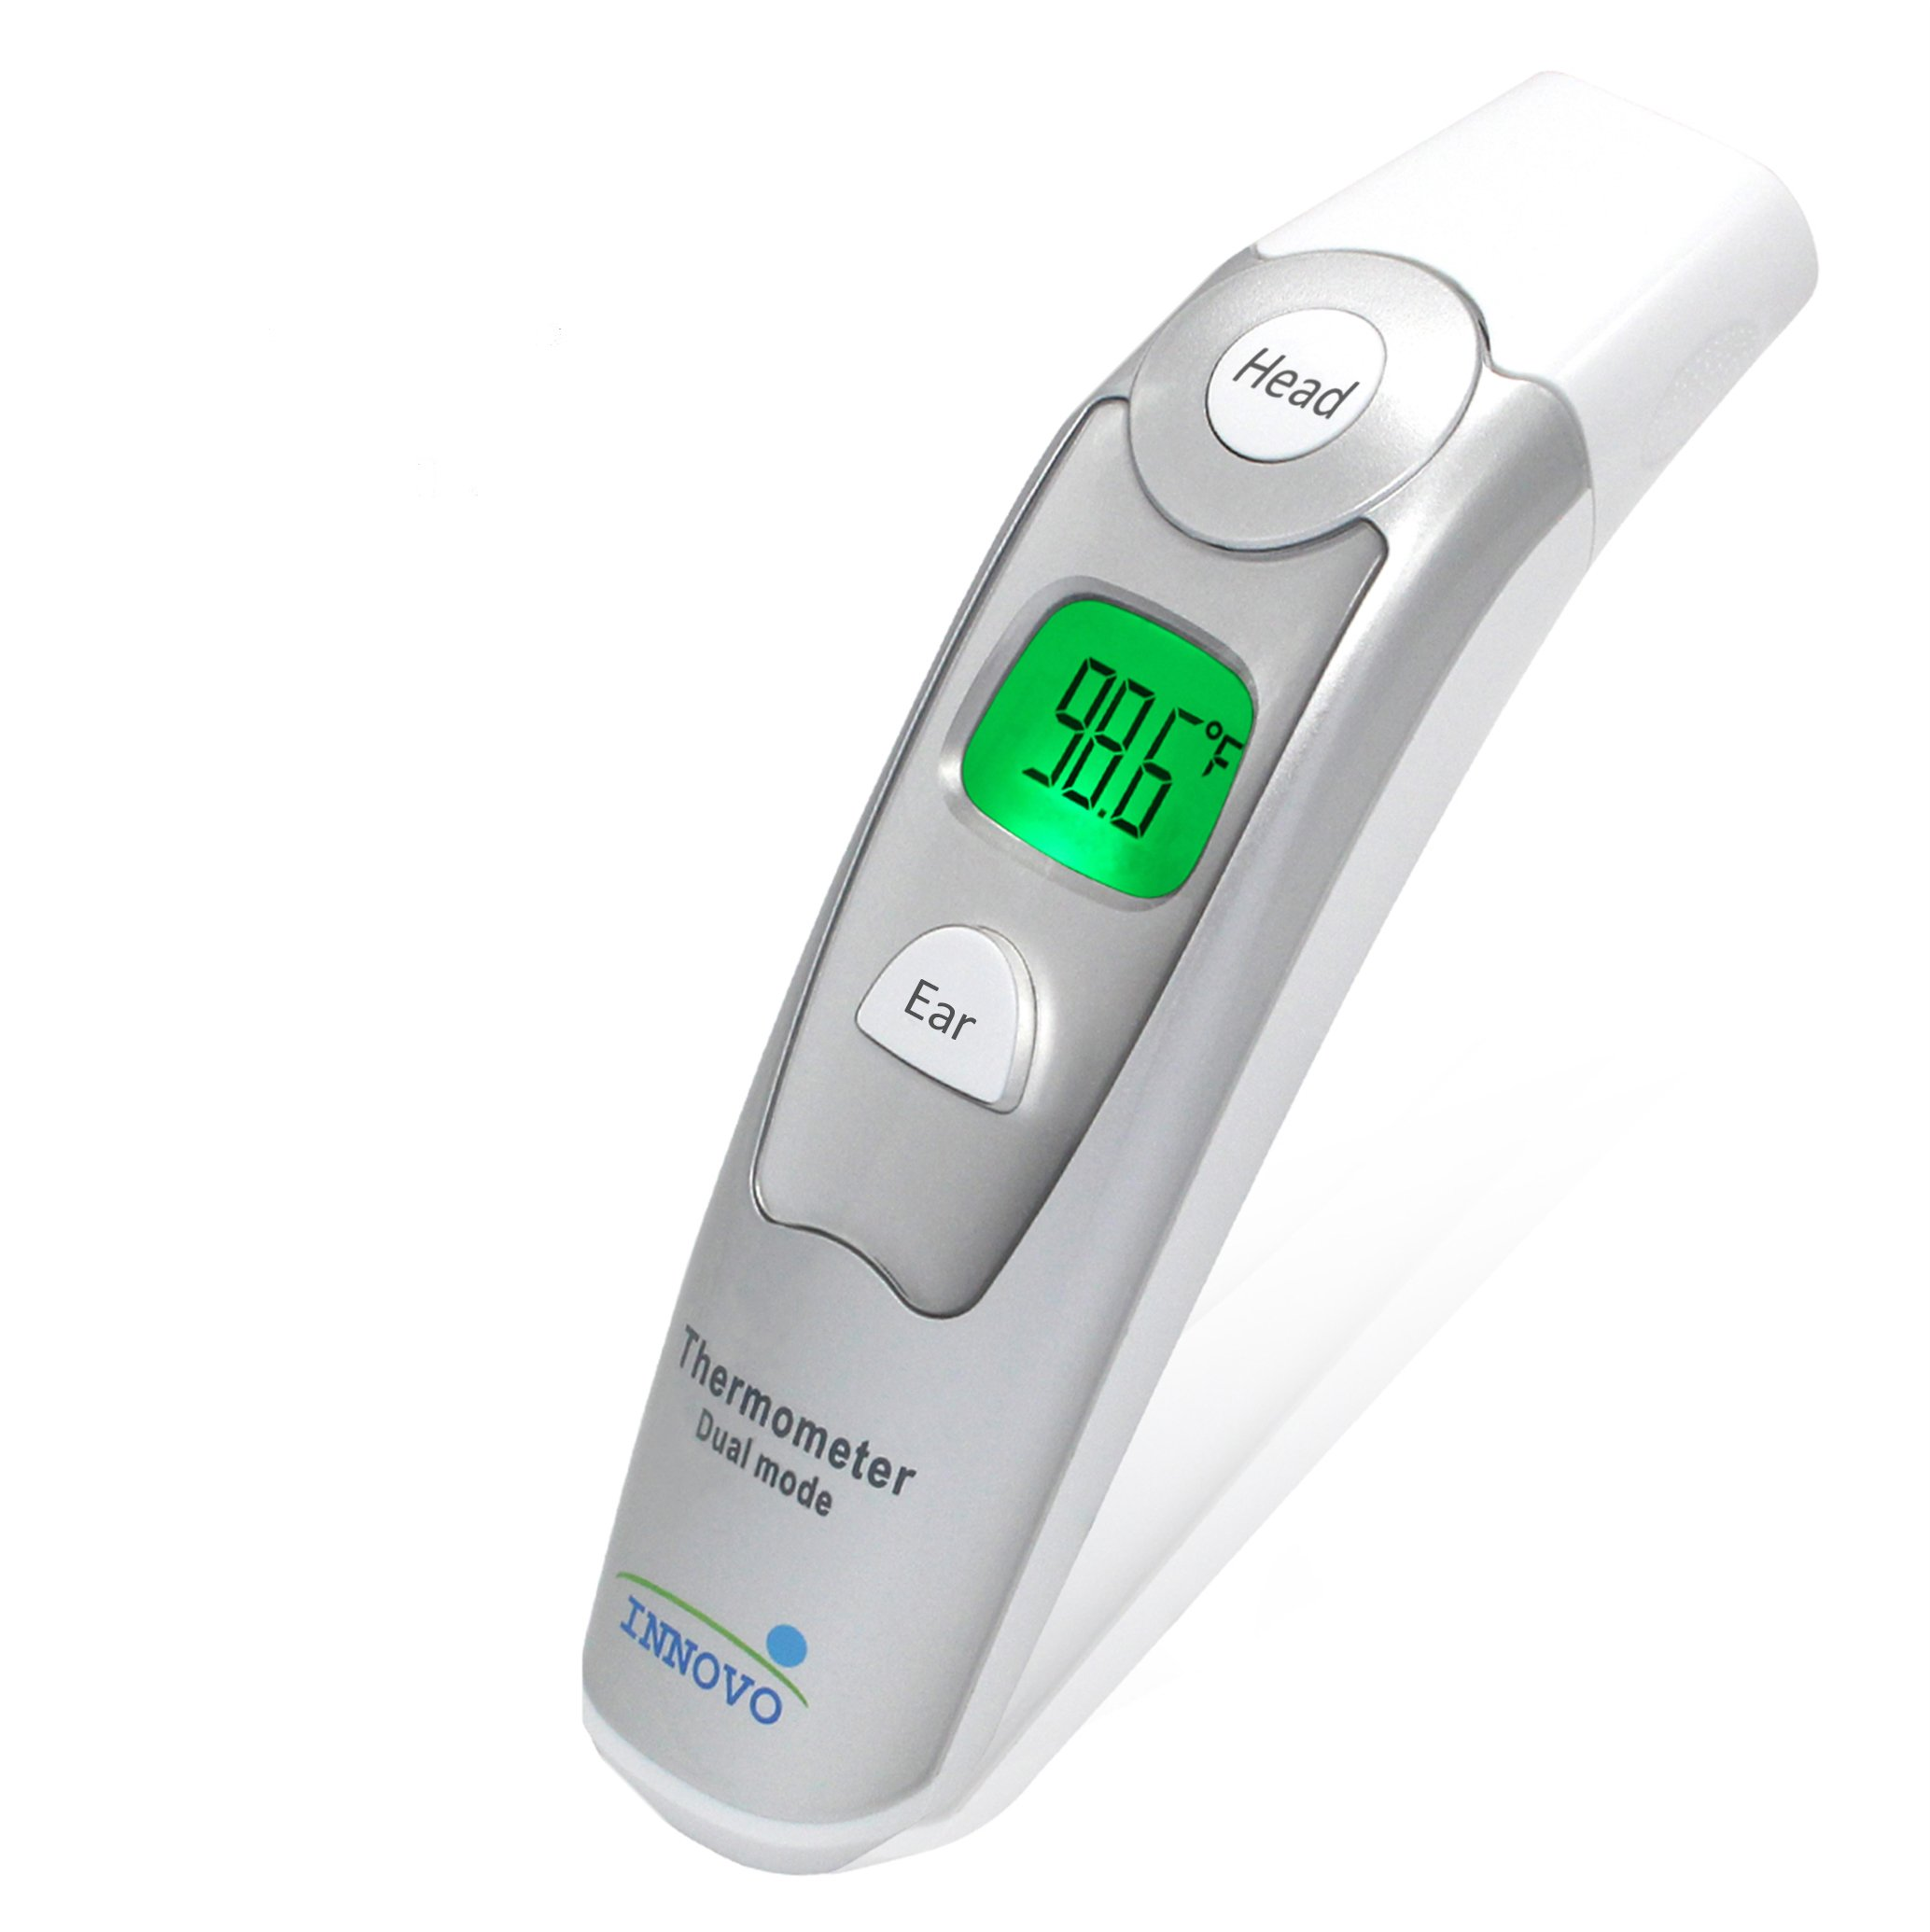 Innovo Medical Digital Forehead and Ear Thermometer Upgraded Model - Temperature and Fever Health Alert Monitoring System for Children and Adults - CE and FDA Cleared